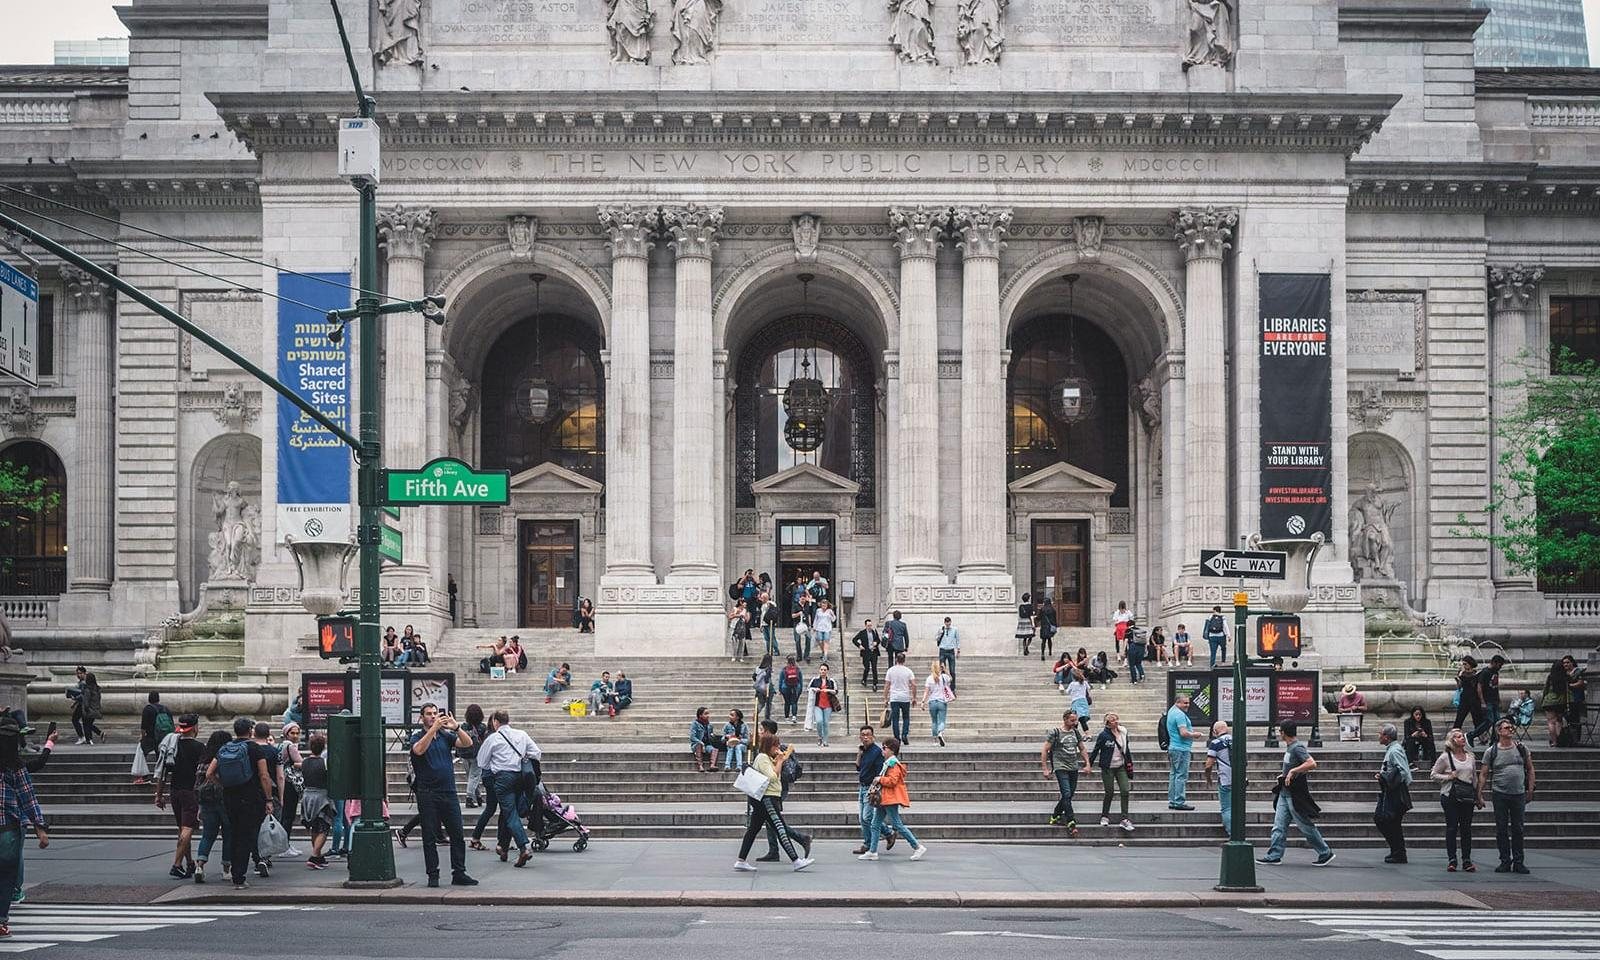 The NYC Public Library | The Most Visited US Public Library